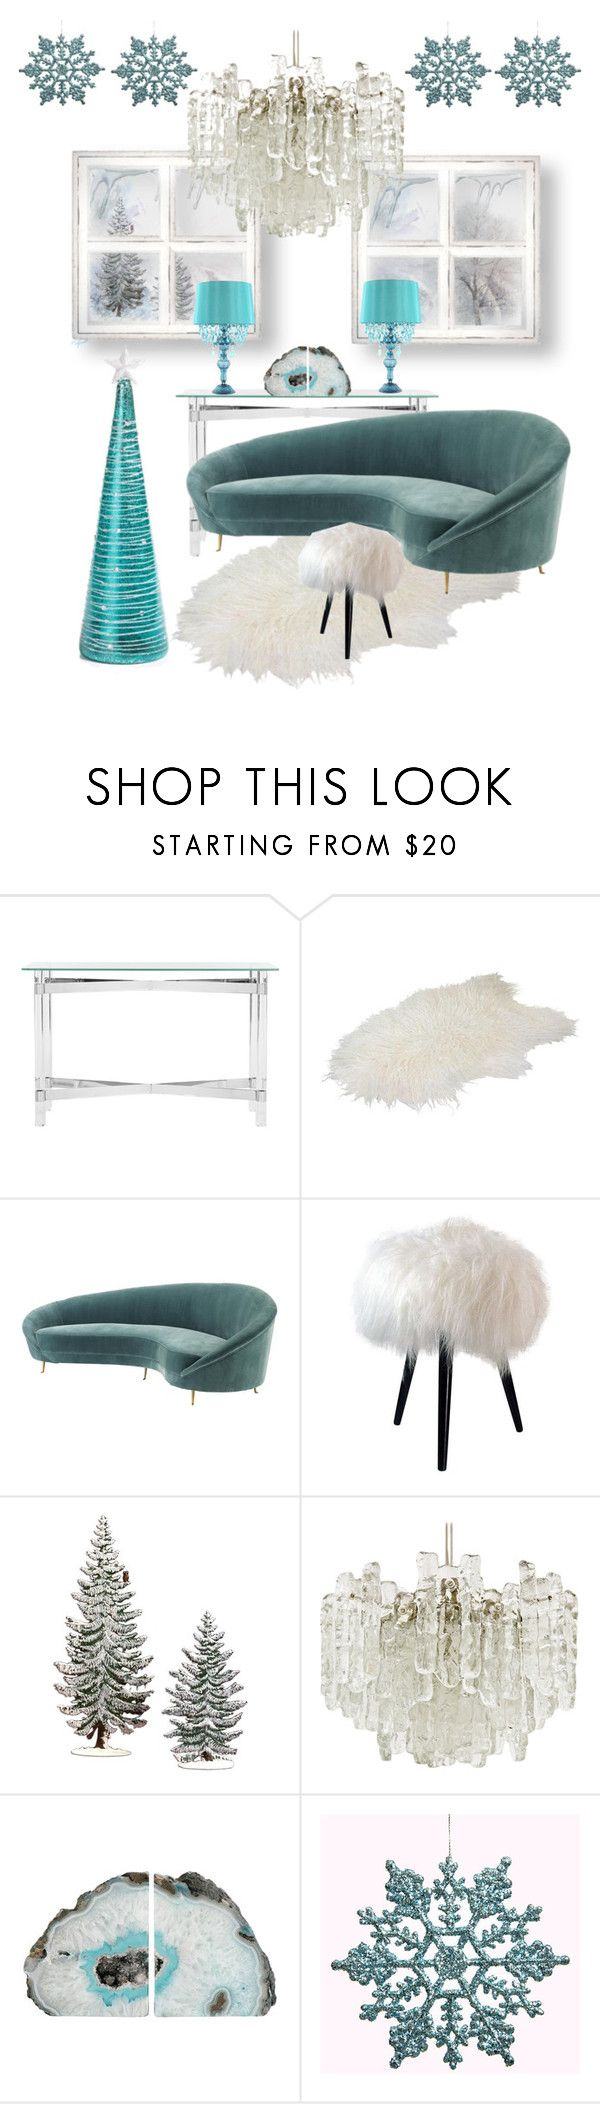 """""""❄️Frozen Living Room❄️"""" by sab26bas ❤ liked on Polyvore featuring interior, interiors, interior design, home, home decor, interior decorating, Safavieh, Eichholtz, Kalmar and Poetic Wanderlust"""